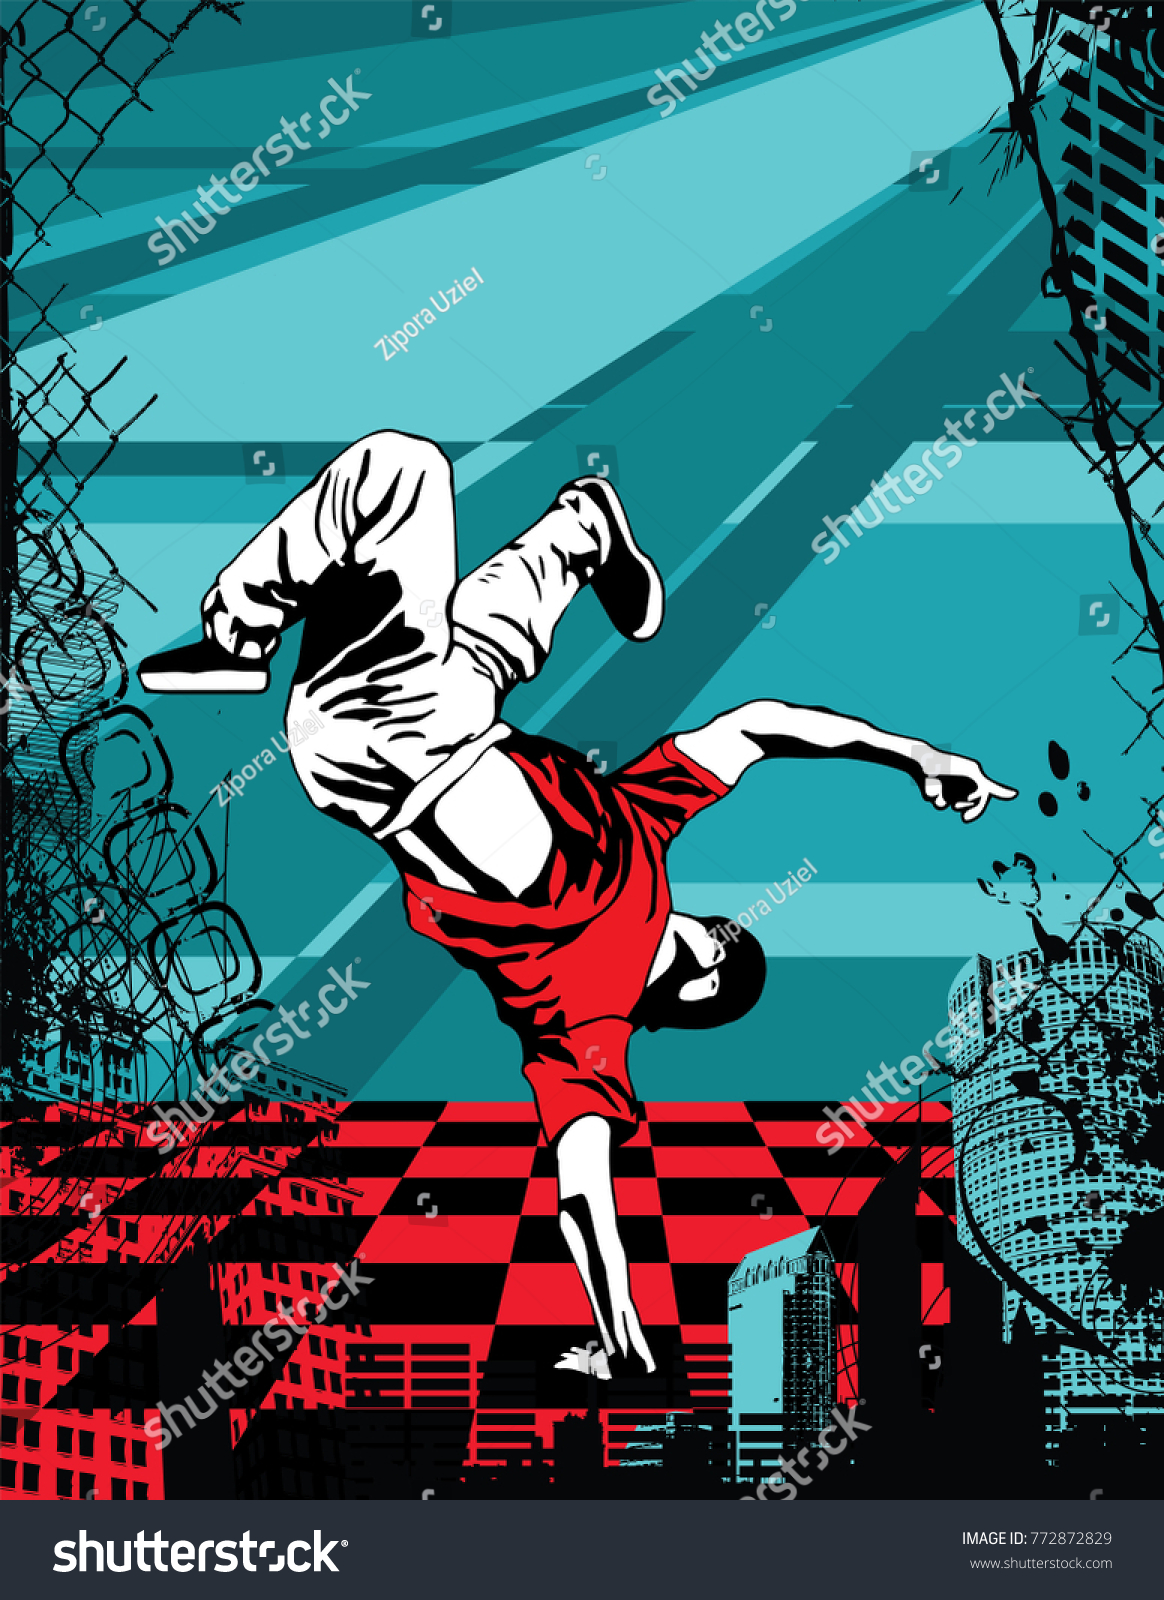 Cool Image With Breakdancer On The Wall Ez Canvas Zipora Black Jeans